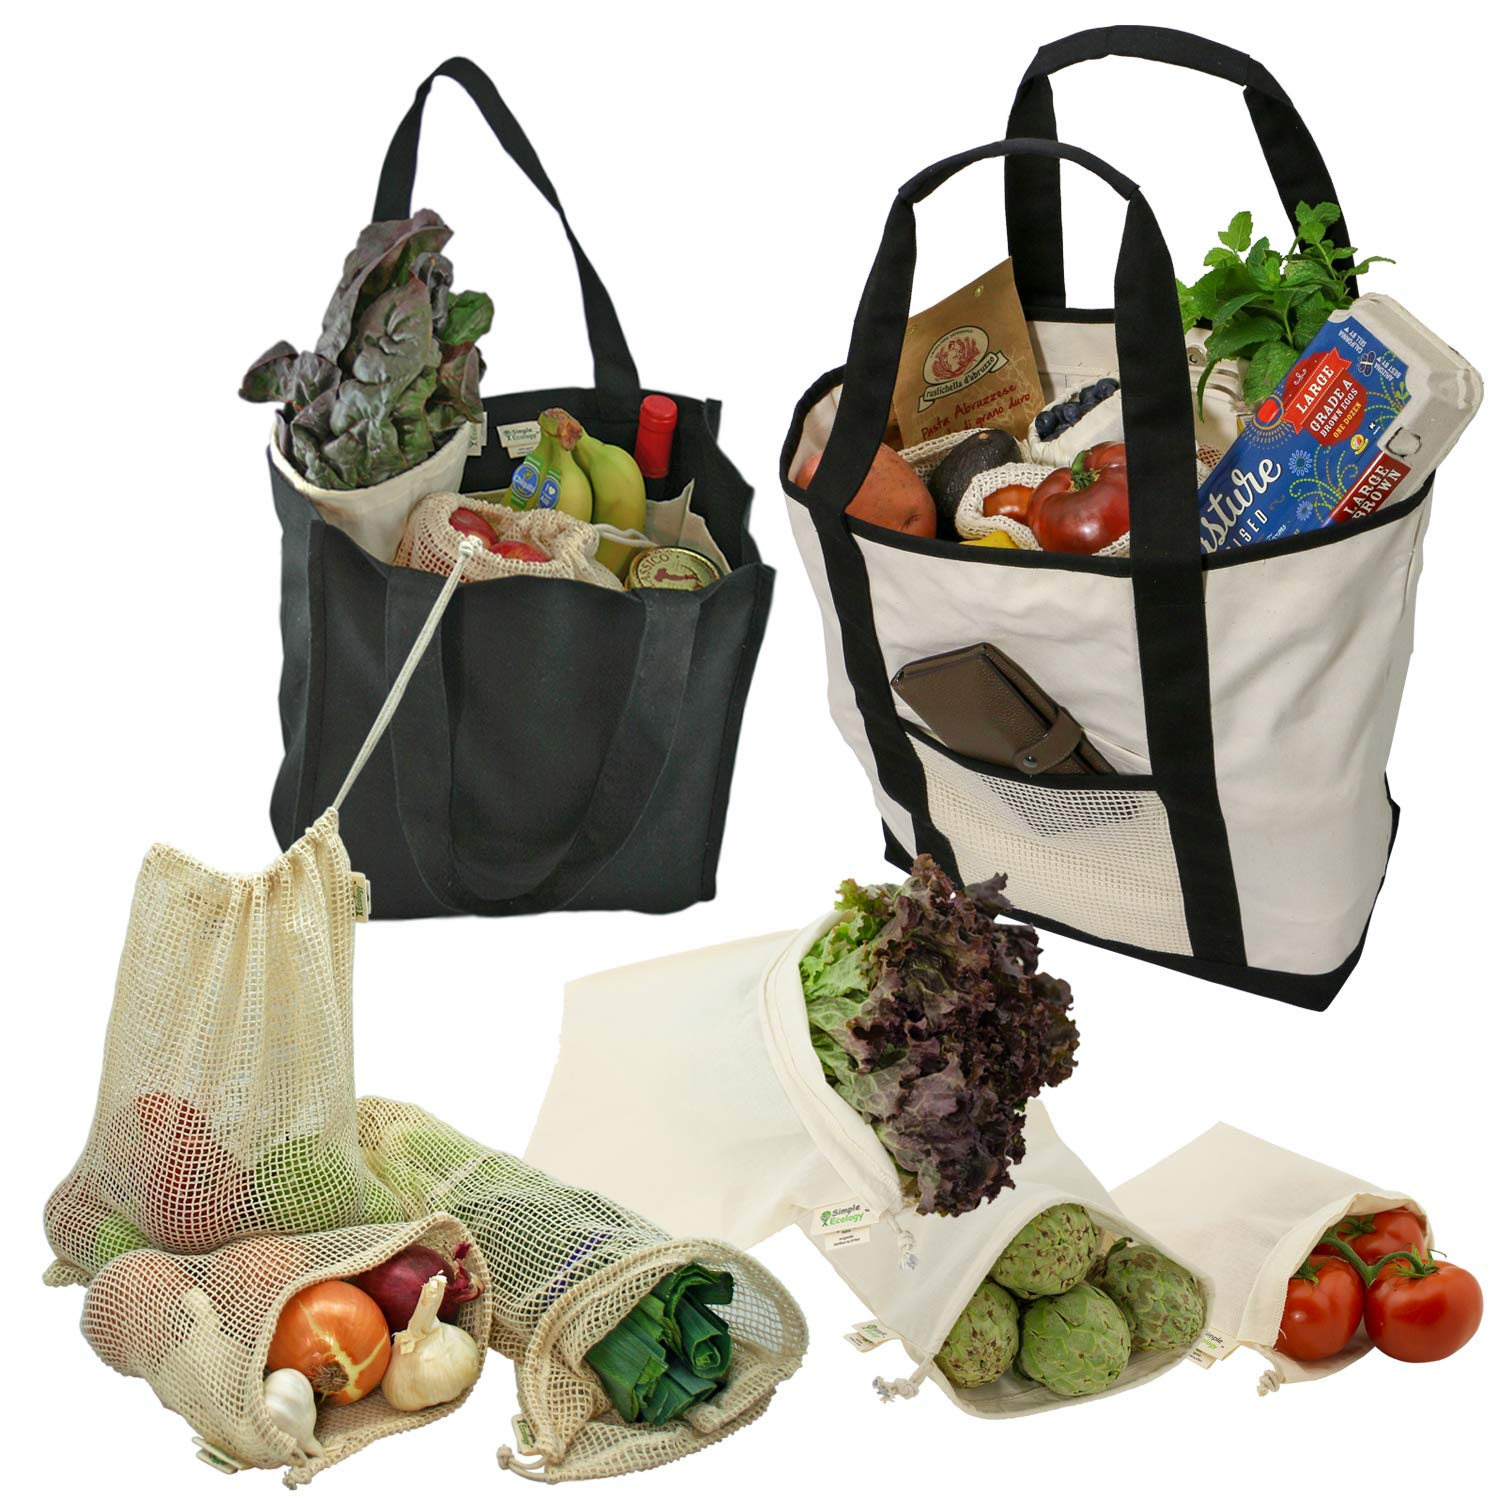 Simple Ecology Reusable Grocery Shopping 8 Bag Gift or Starter Set, Washable, Durable, Organic Cotton, Natural with Black